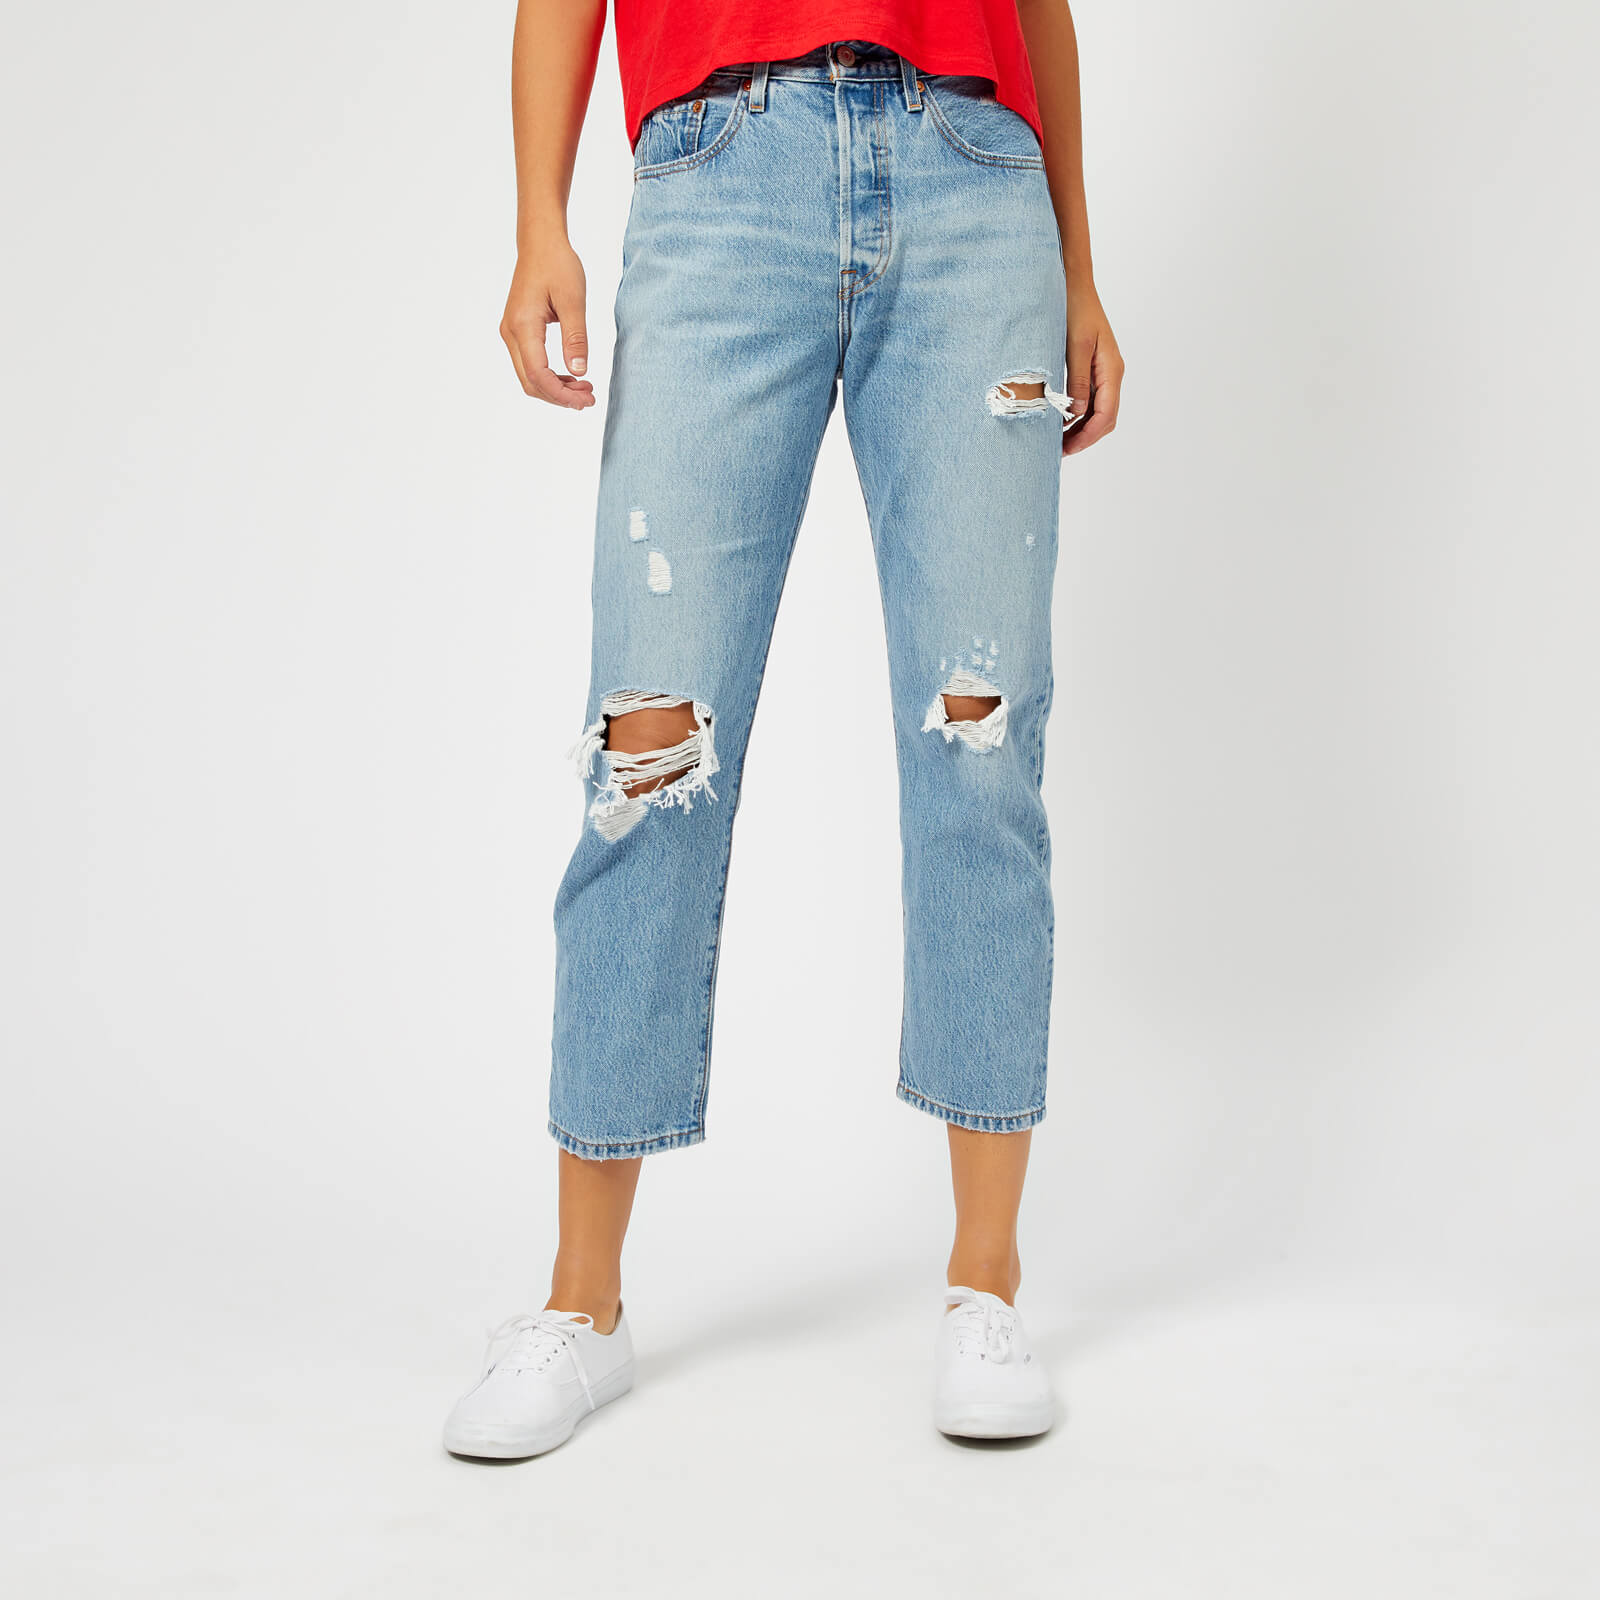 3b16bc33757 Levi's Women's 501 Crop Jeans - Authentically Yours - Free UK Delivery over  £50